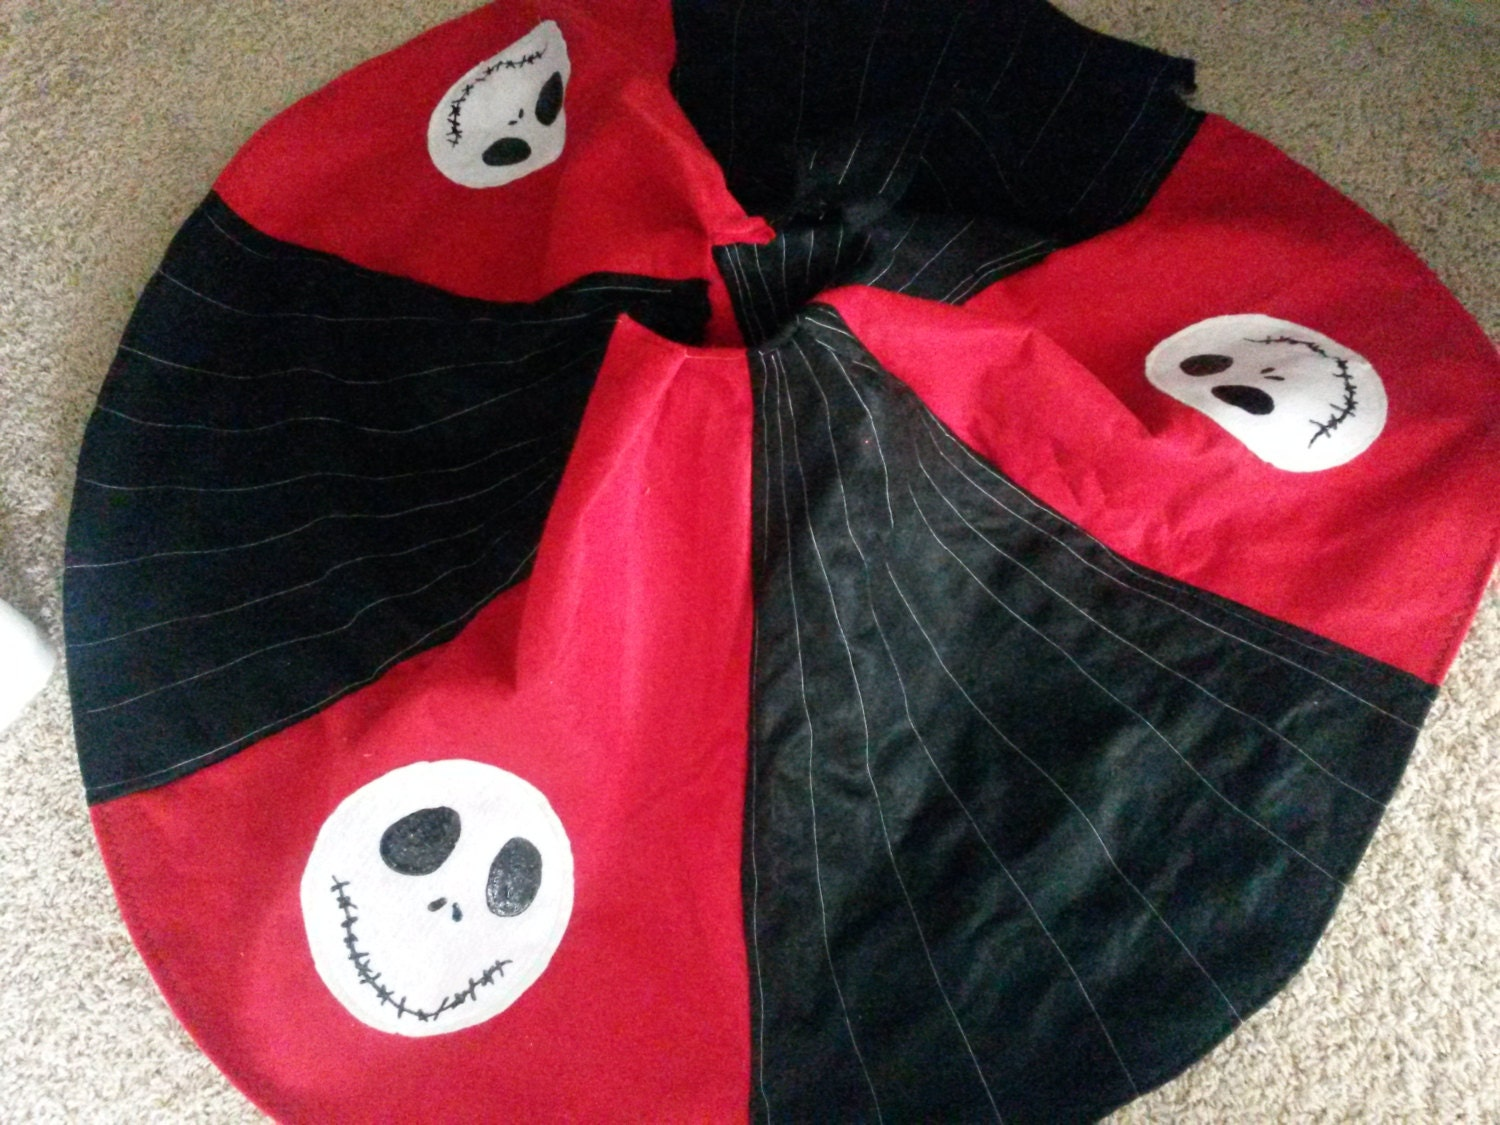 Nightmare Before Christmas Tree Skirt image information